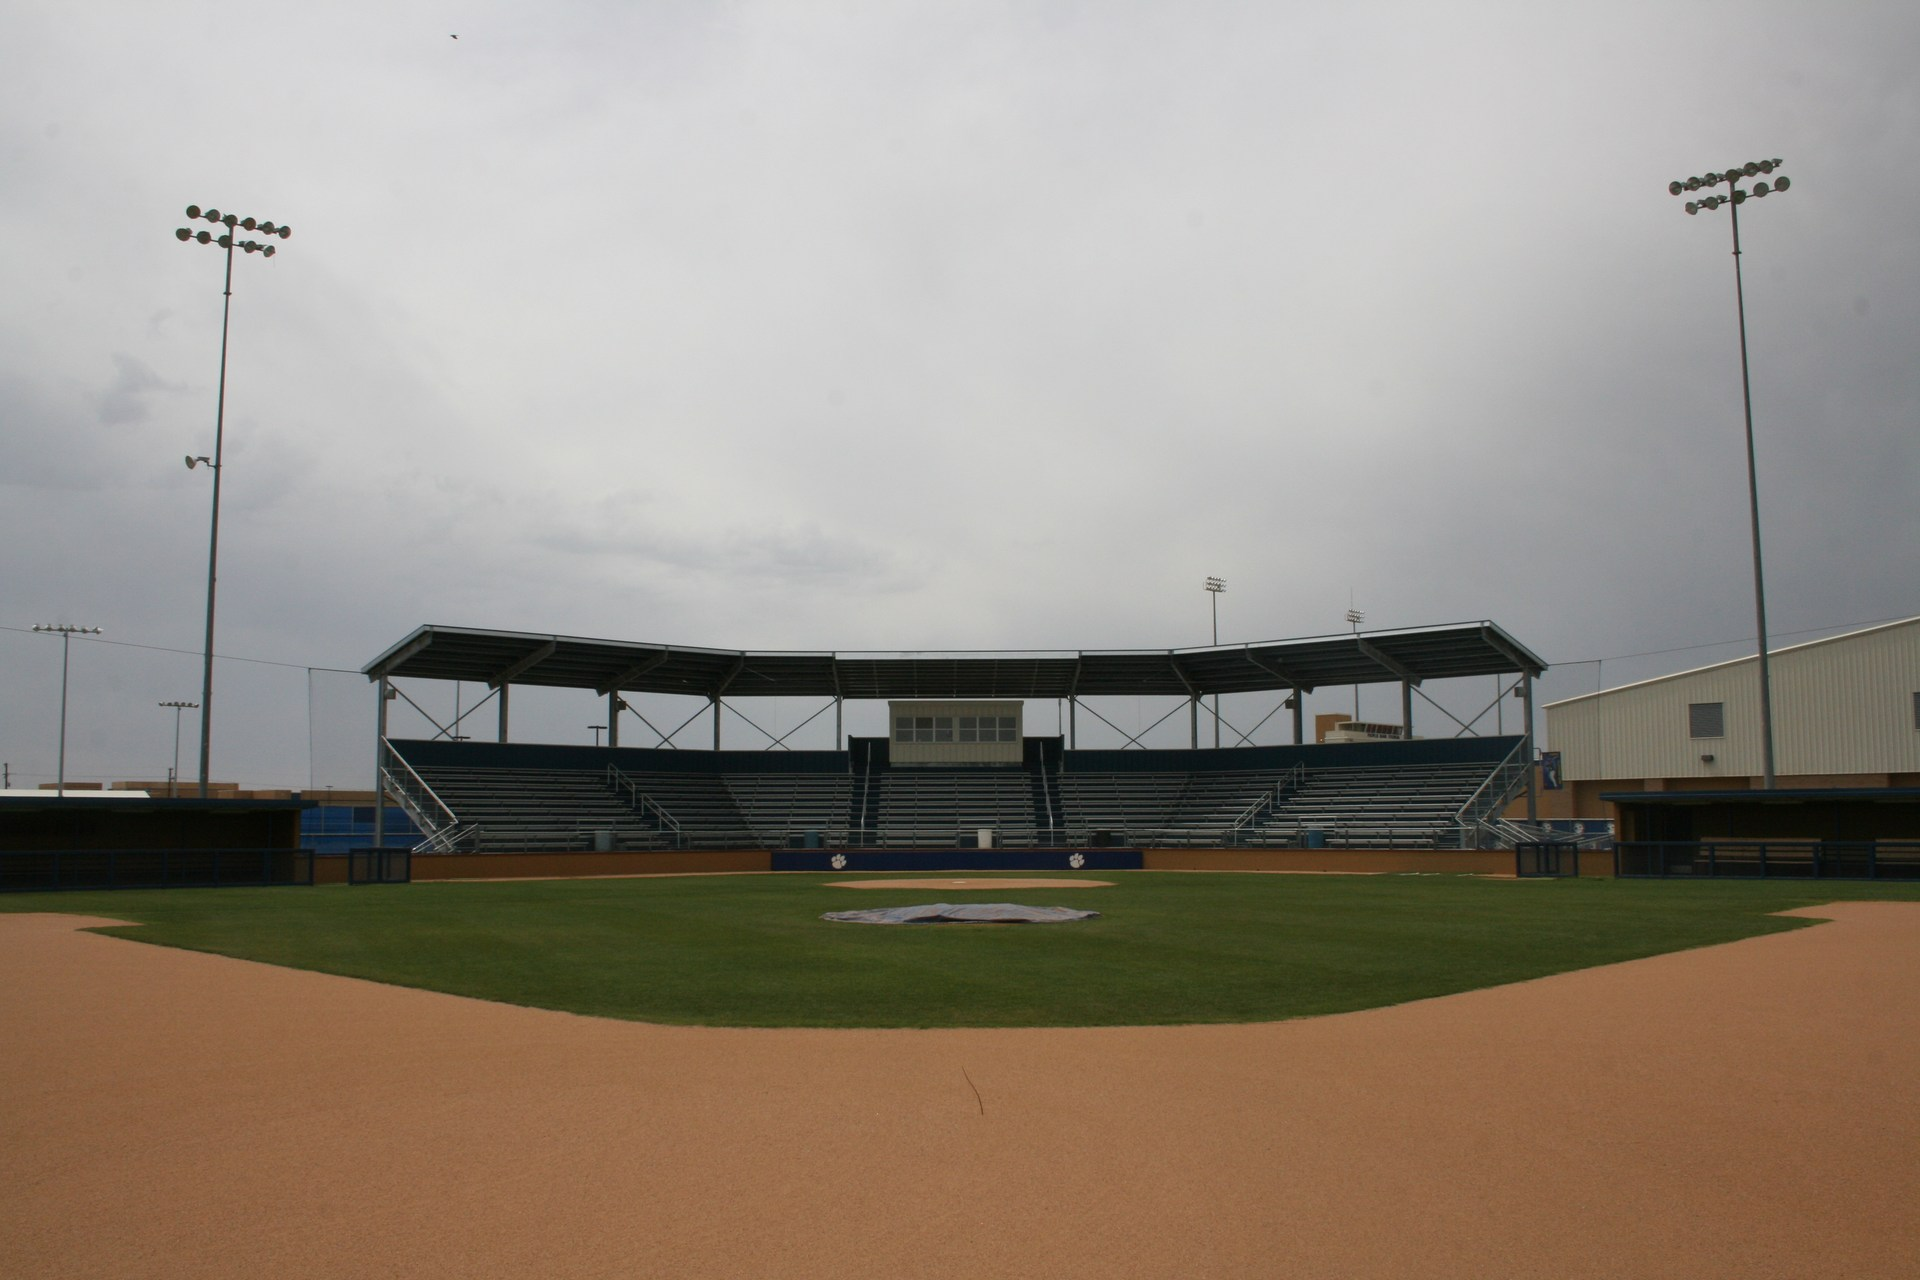 Tiger Baseball Stadium